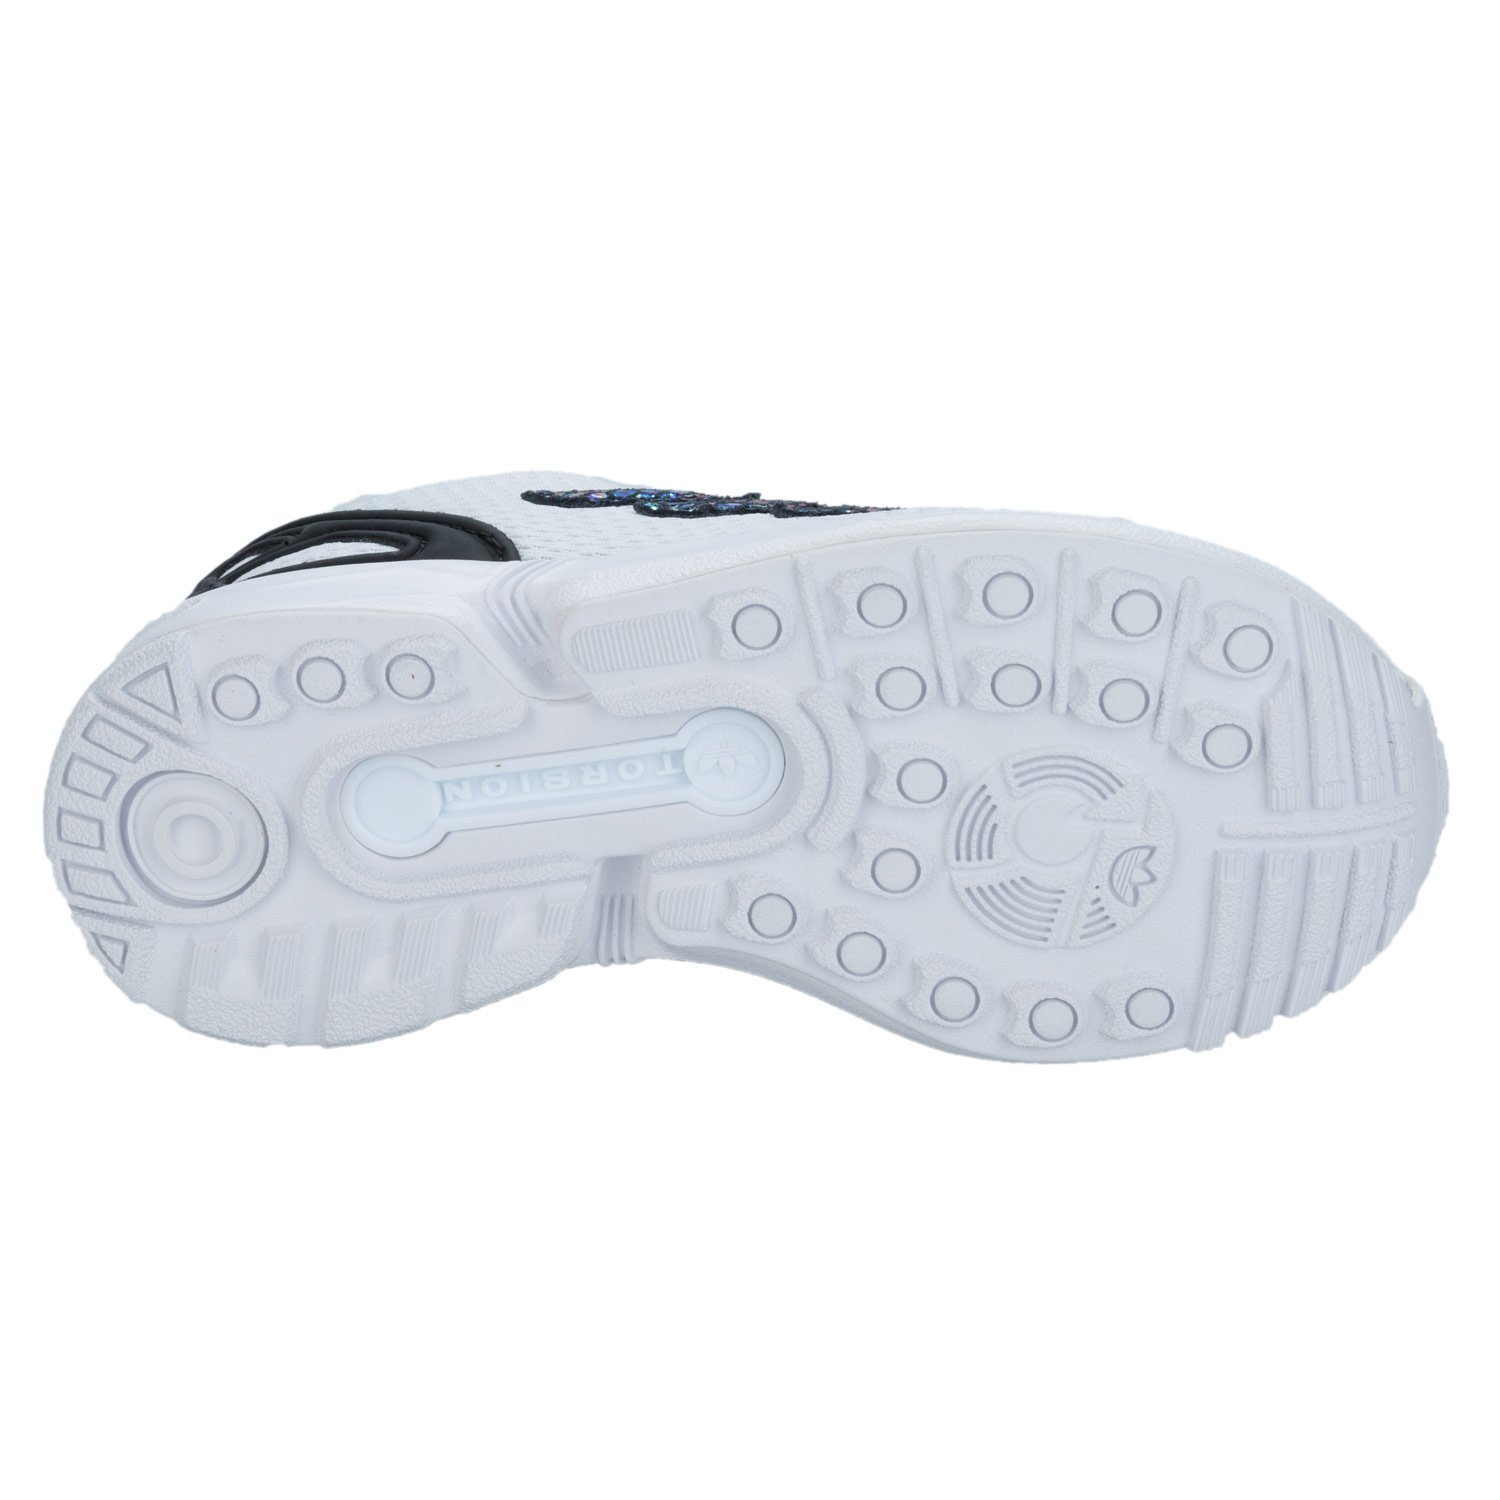 08d12f5c788d7 adidas Children Girls Originals Zx Flux Metallic Snake Trainers in White   Amazon.co.uk  Shoes   Bags